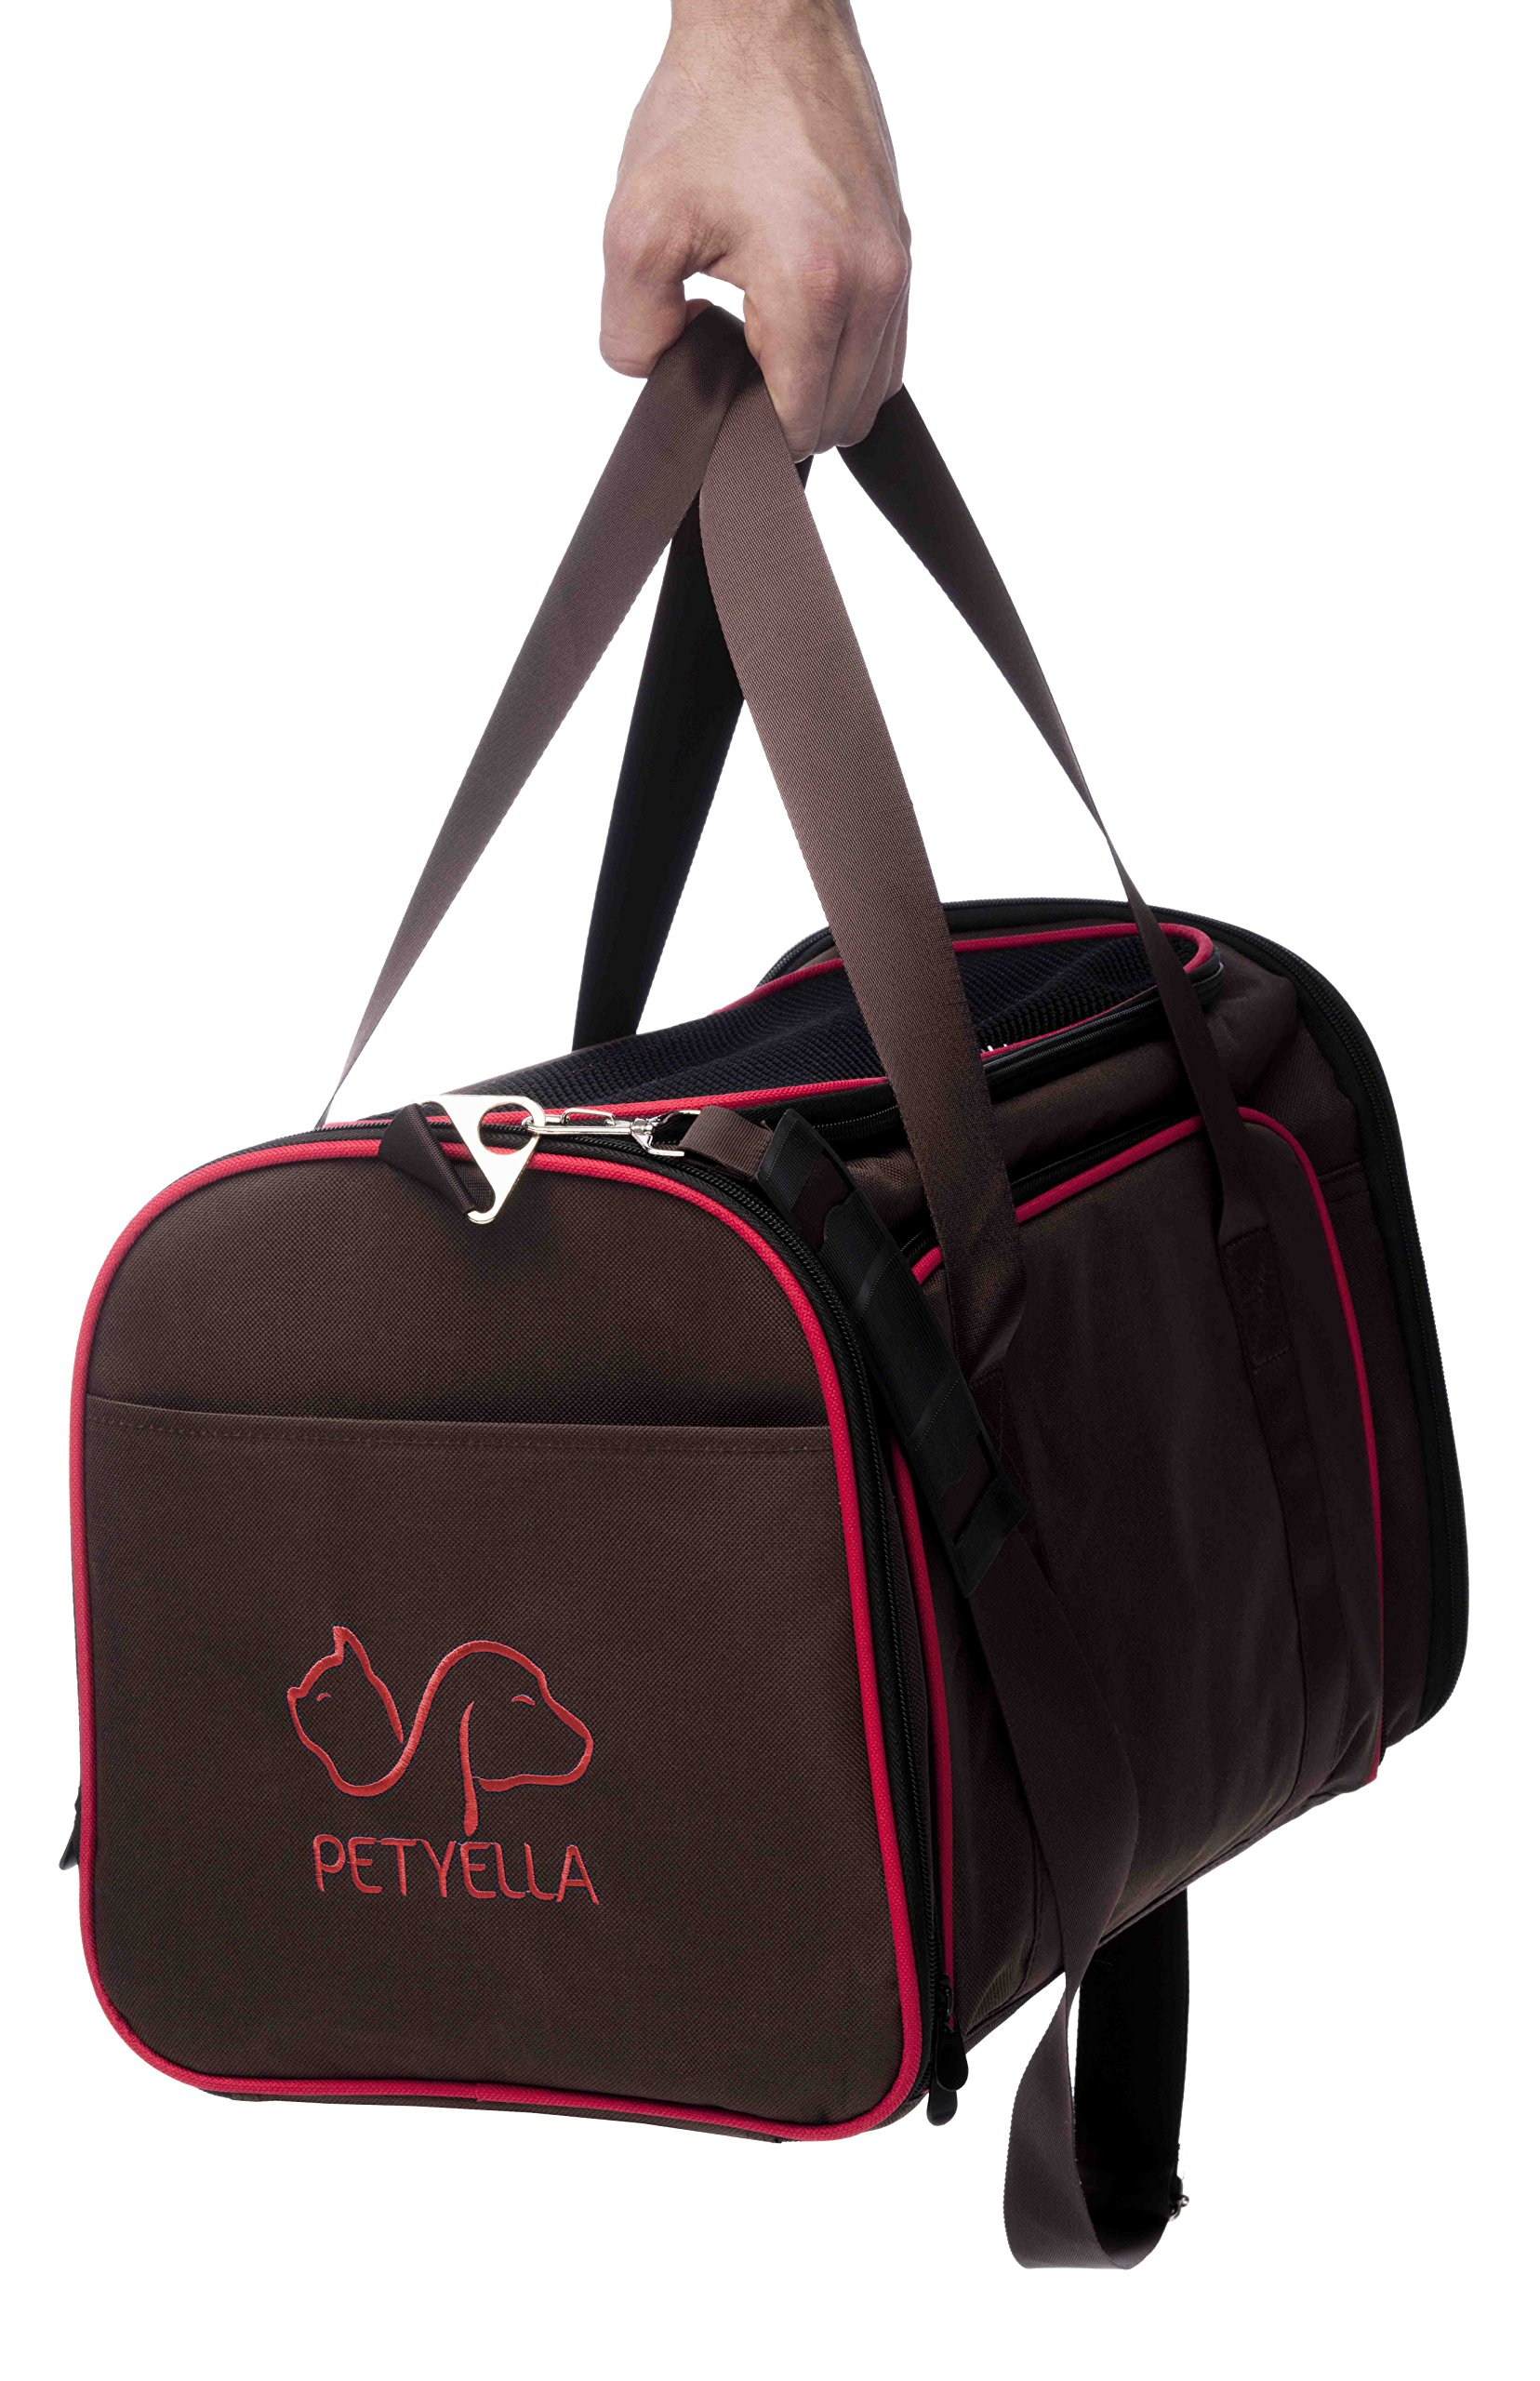 Petyella Cat Carrier Pet Carrier for Small Dogs and Cats Expandable Soft Sided Crate for Pet - Airline Approved Medium Kennel Travel Bag - 2.8 lbs Dog Carriers with Bonus Blanket and Bowl,Dark Brown by Petyella (Image #9)